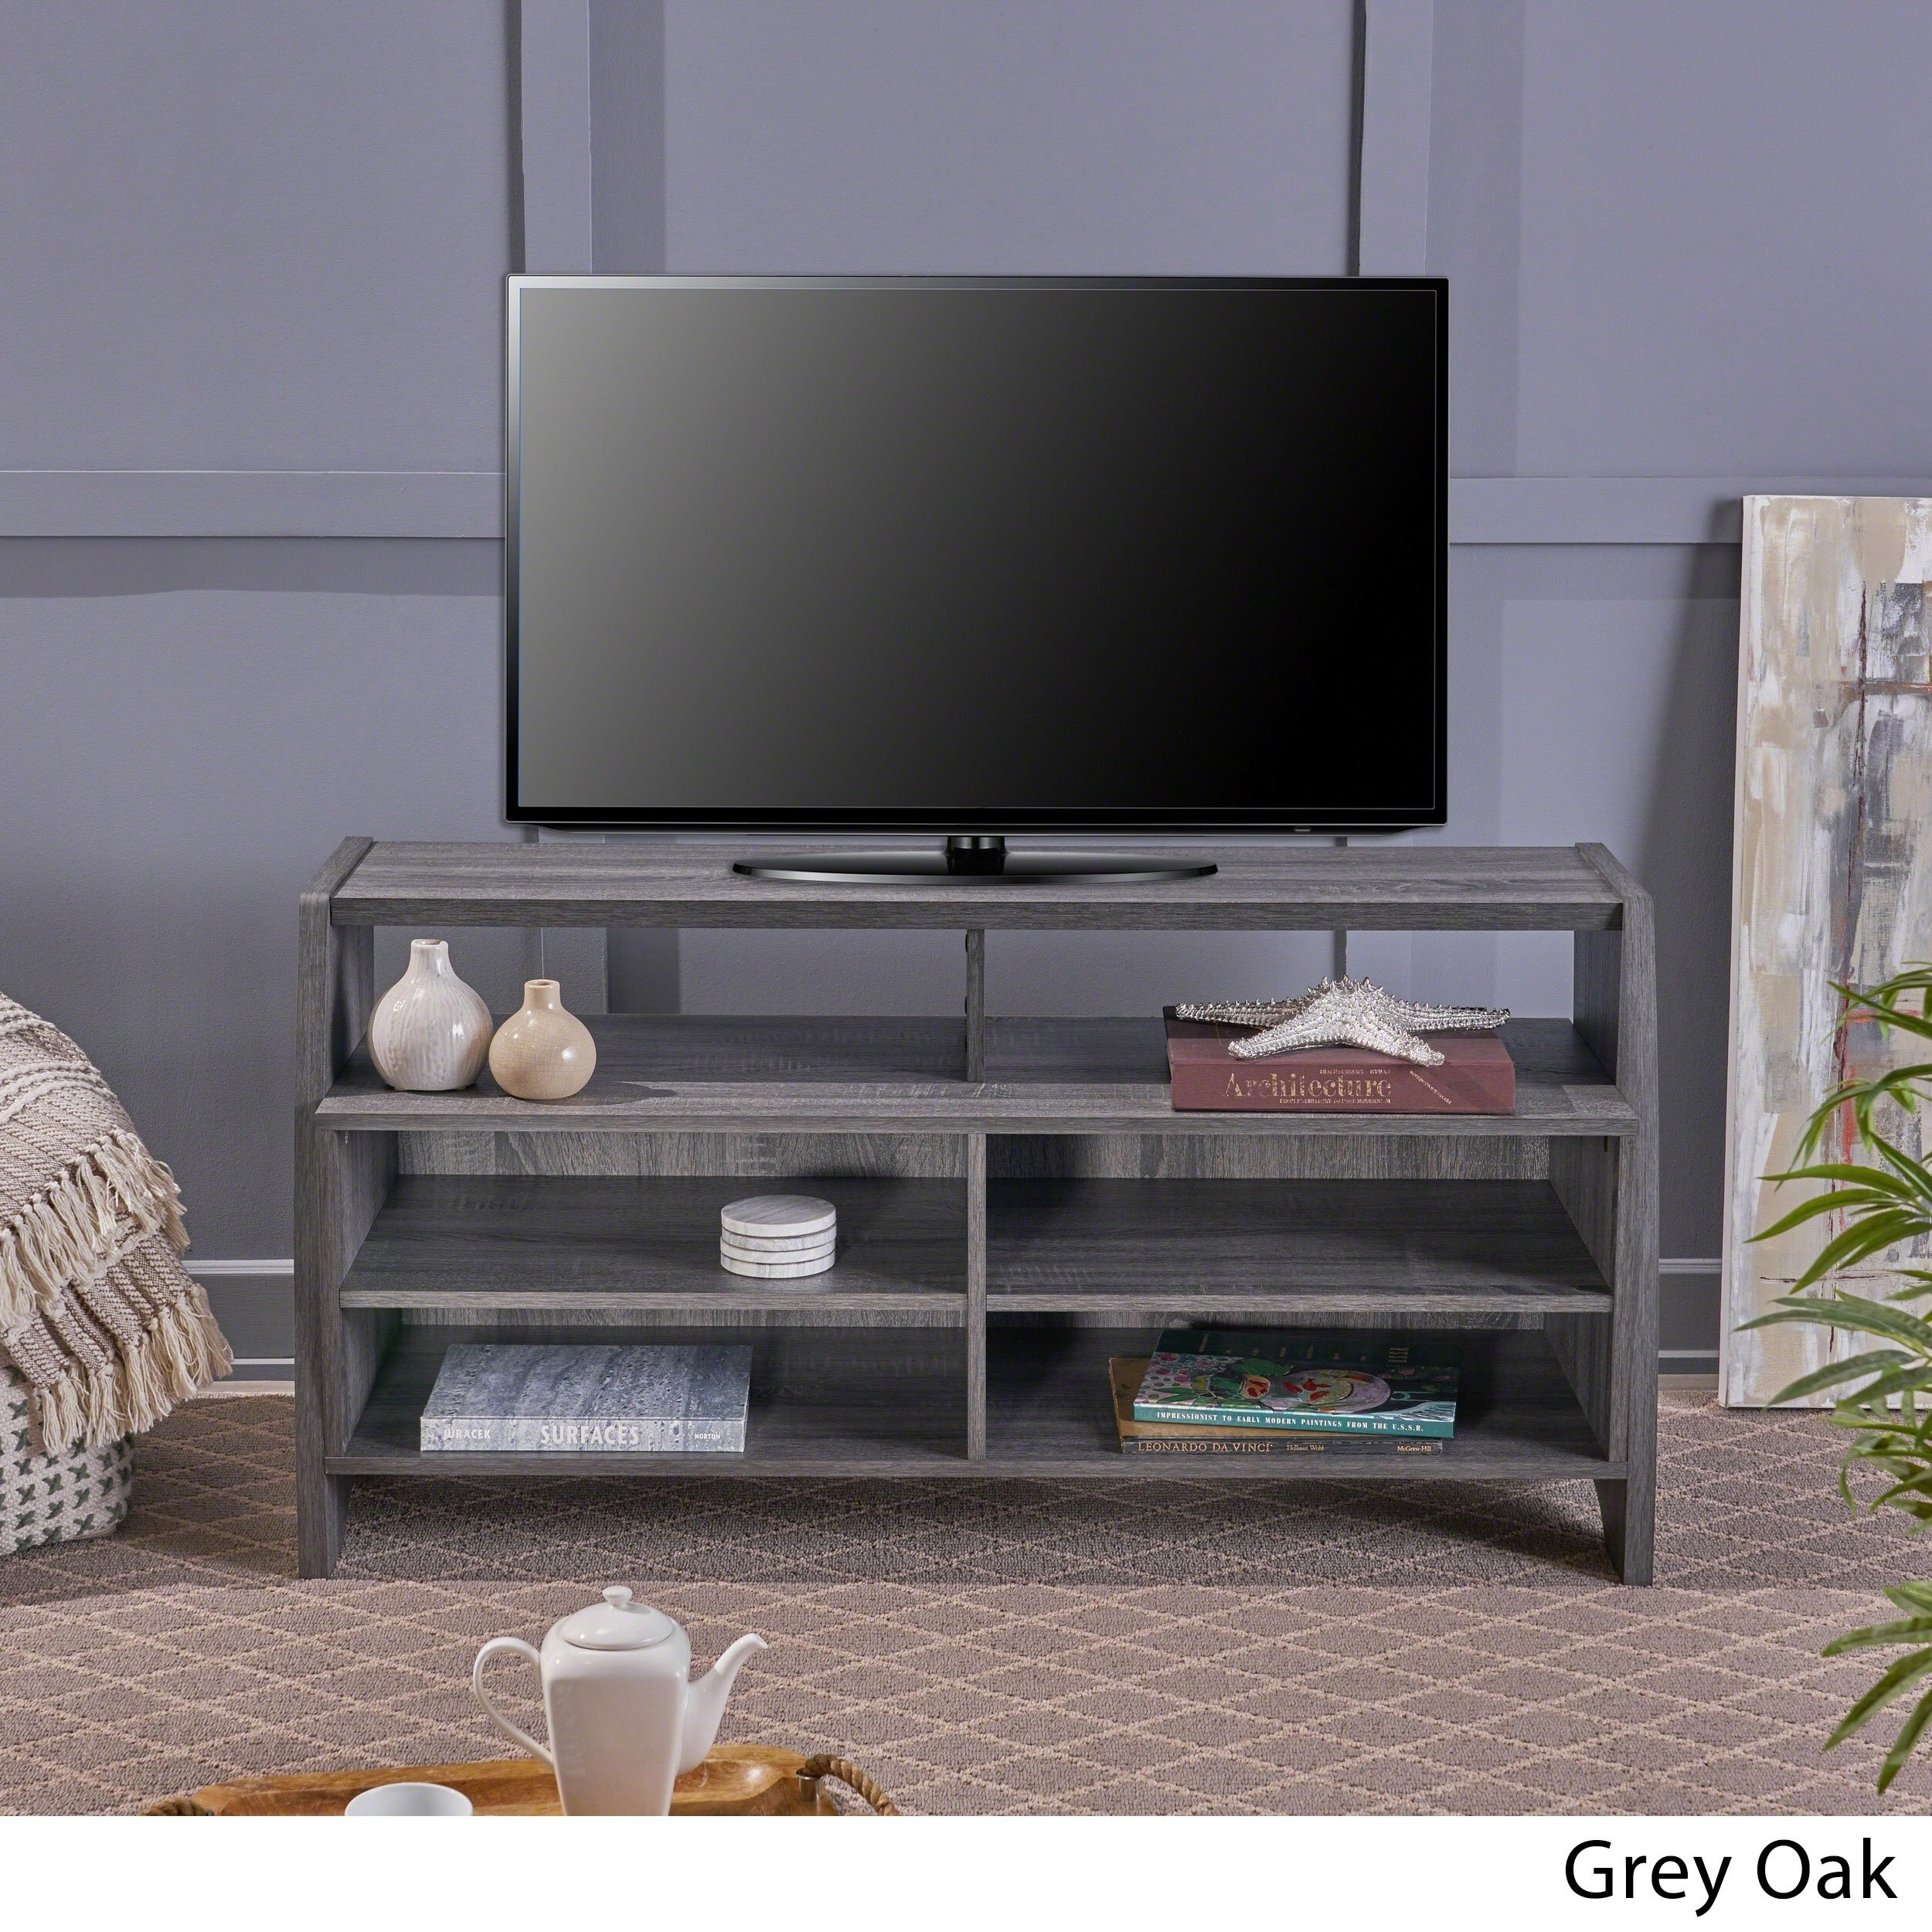 Buy Grey, 42 – 60 Inches Tv Stands & Entertainment Centers Online At With Regard To Rowan 45 Inch Tv Stands (View 22 of 30)